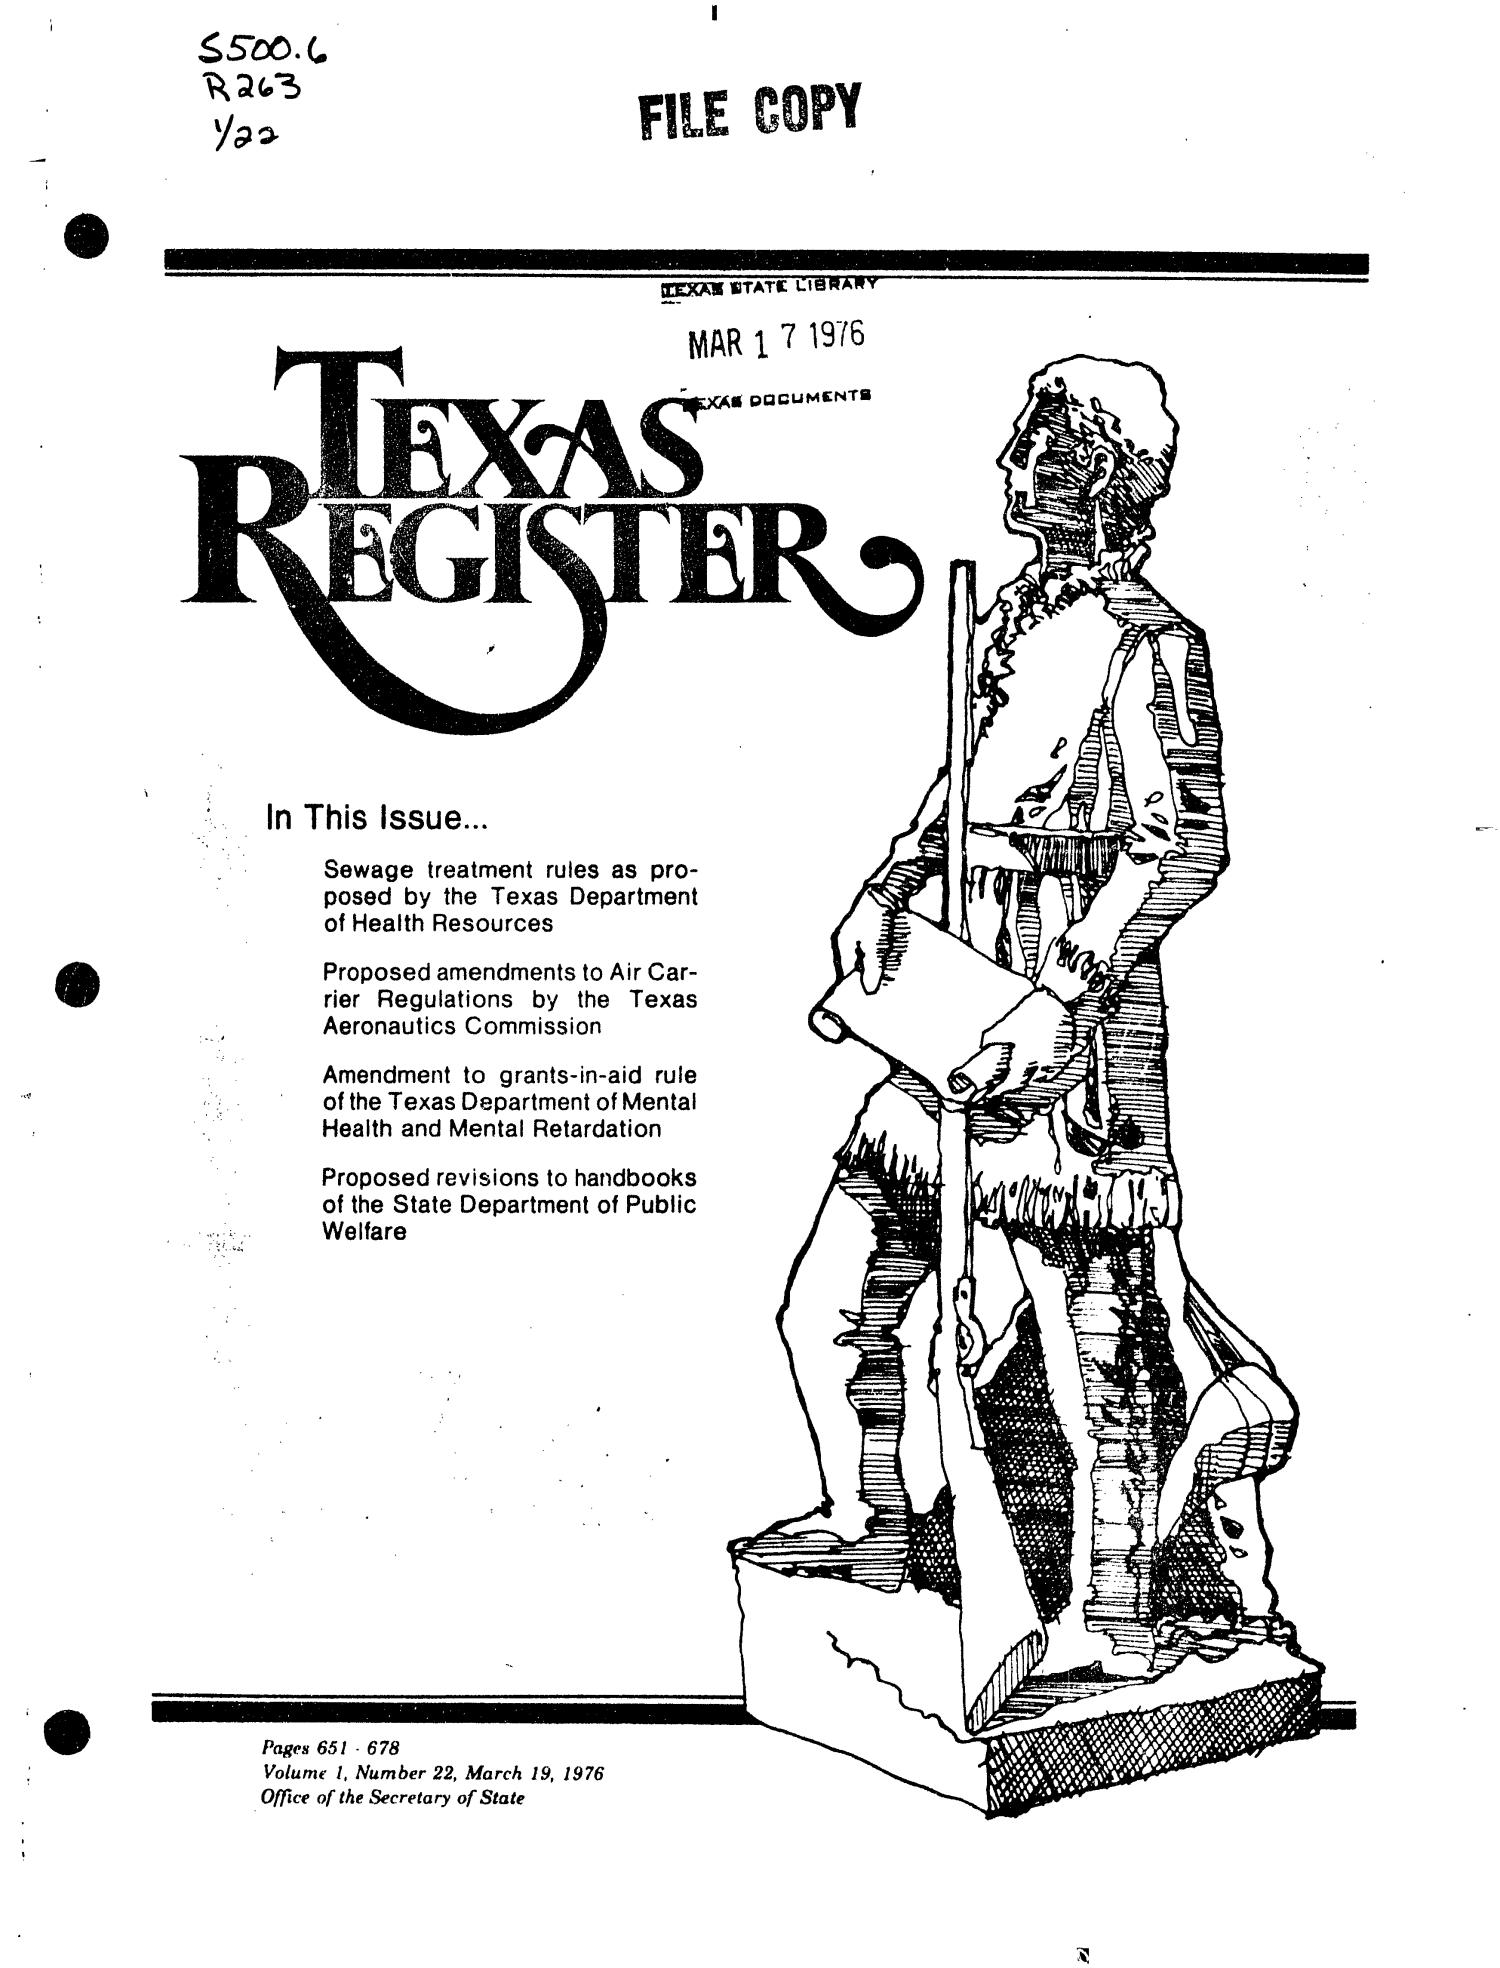 Texas Register, Volume 1, Number 22, Pages 651-678, March 19, 1976                                                                                                      Title Page